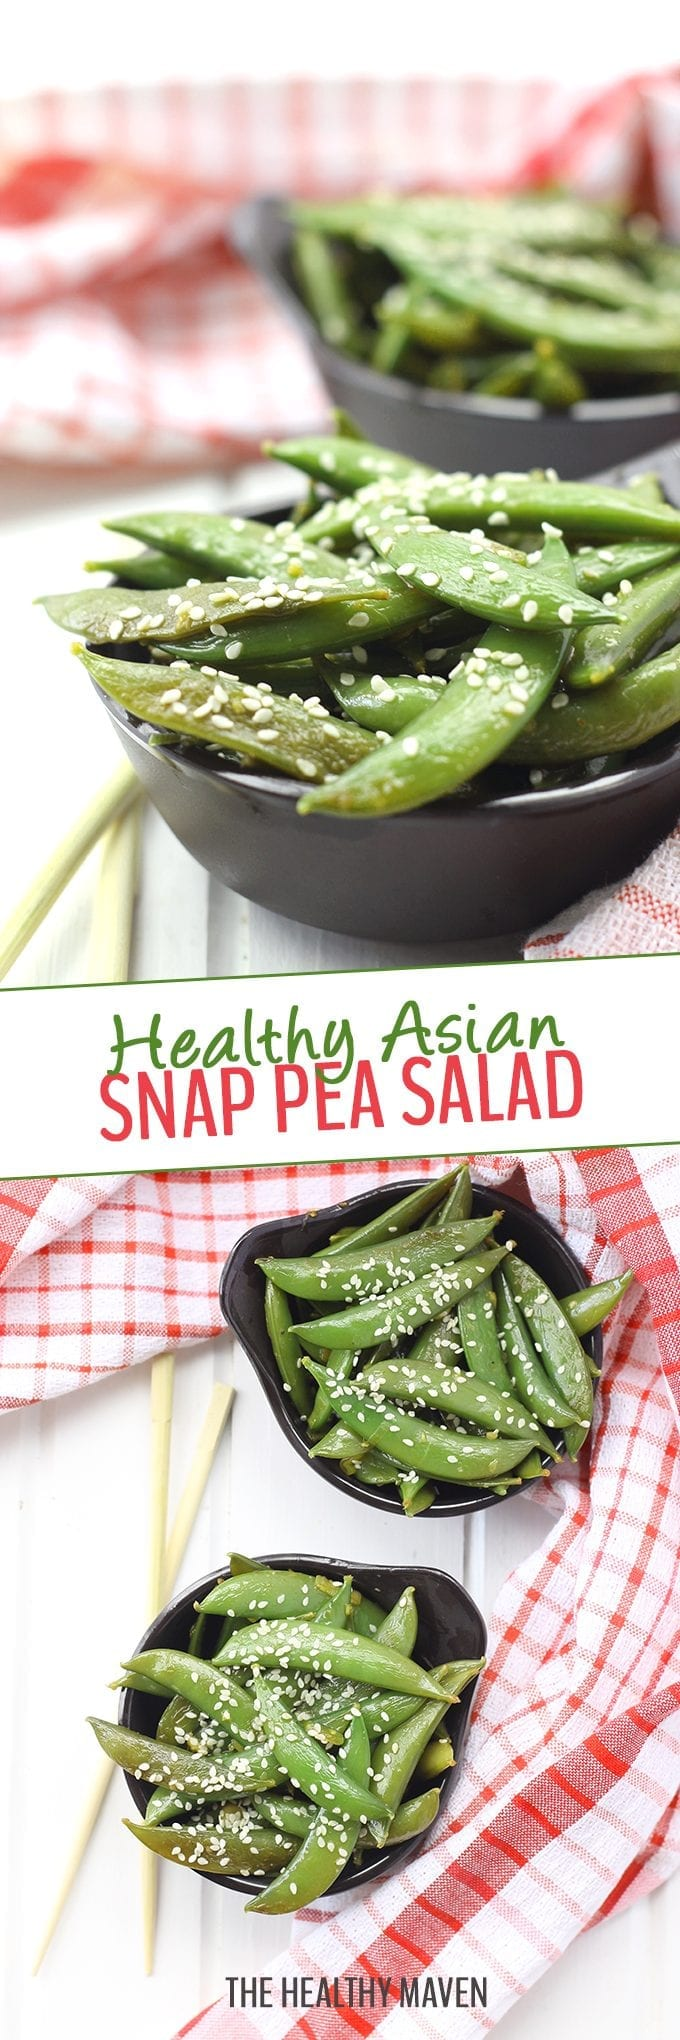 Get in your greens with this Healthy Asian Snap Pea Salad. It's super simple to make and coated with a light sesame-ginger dressing. You'll definitely be going back for seconds!